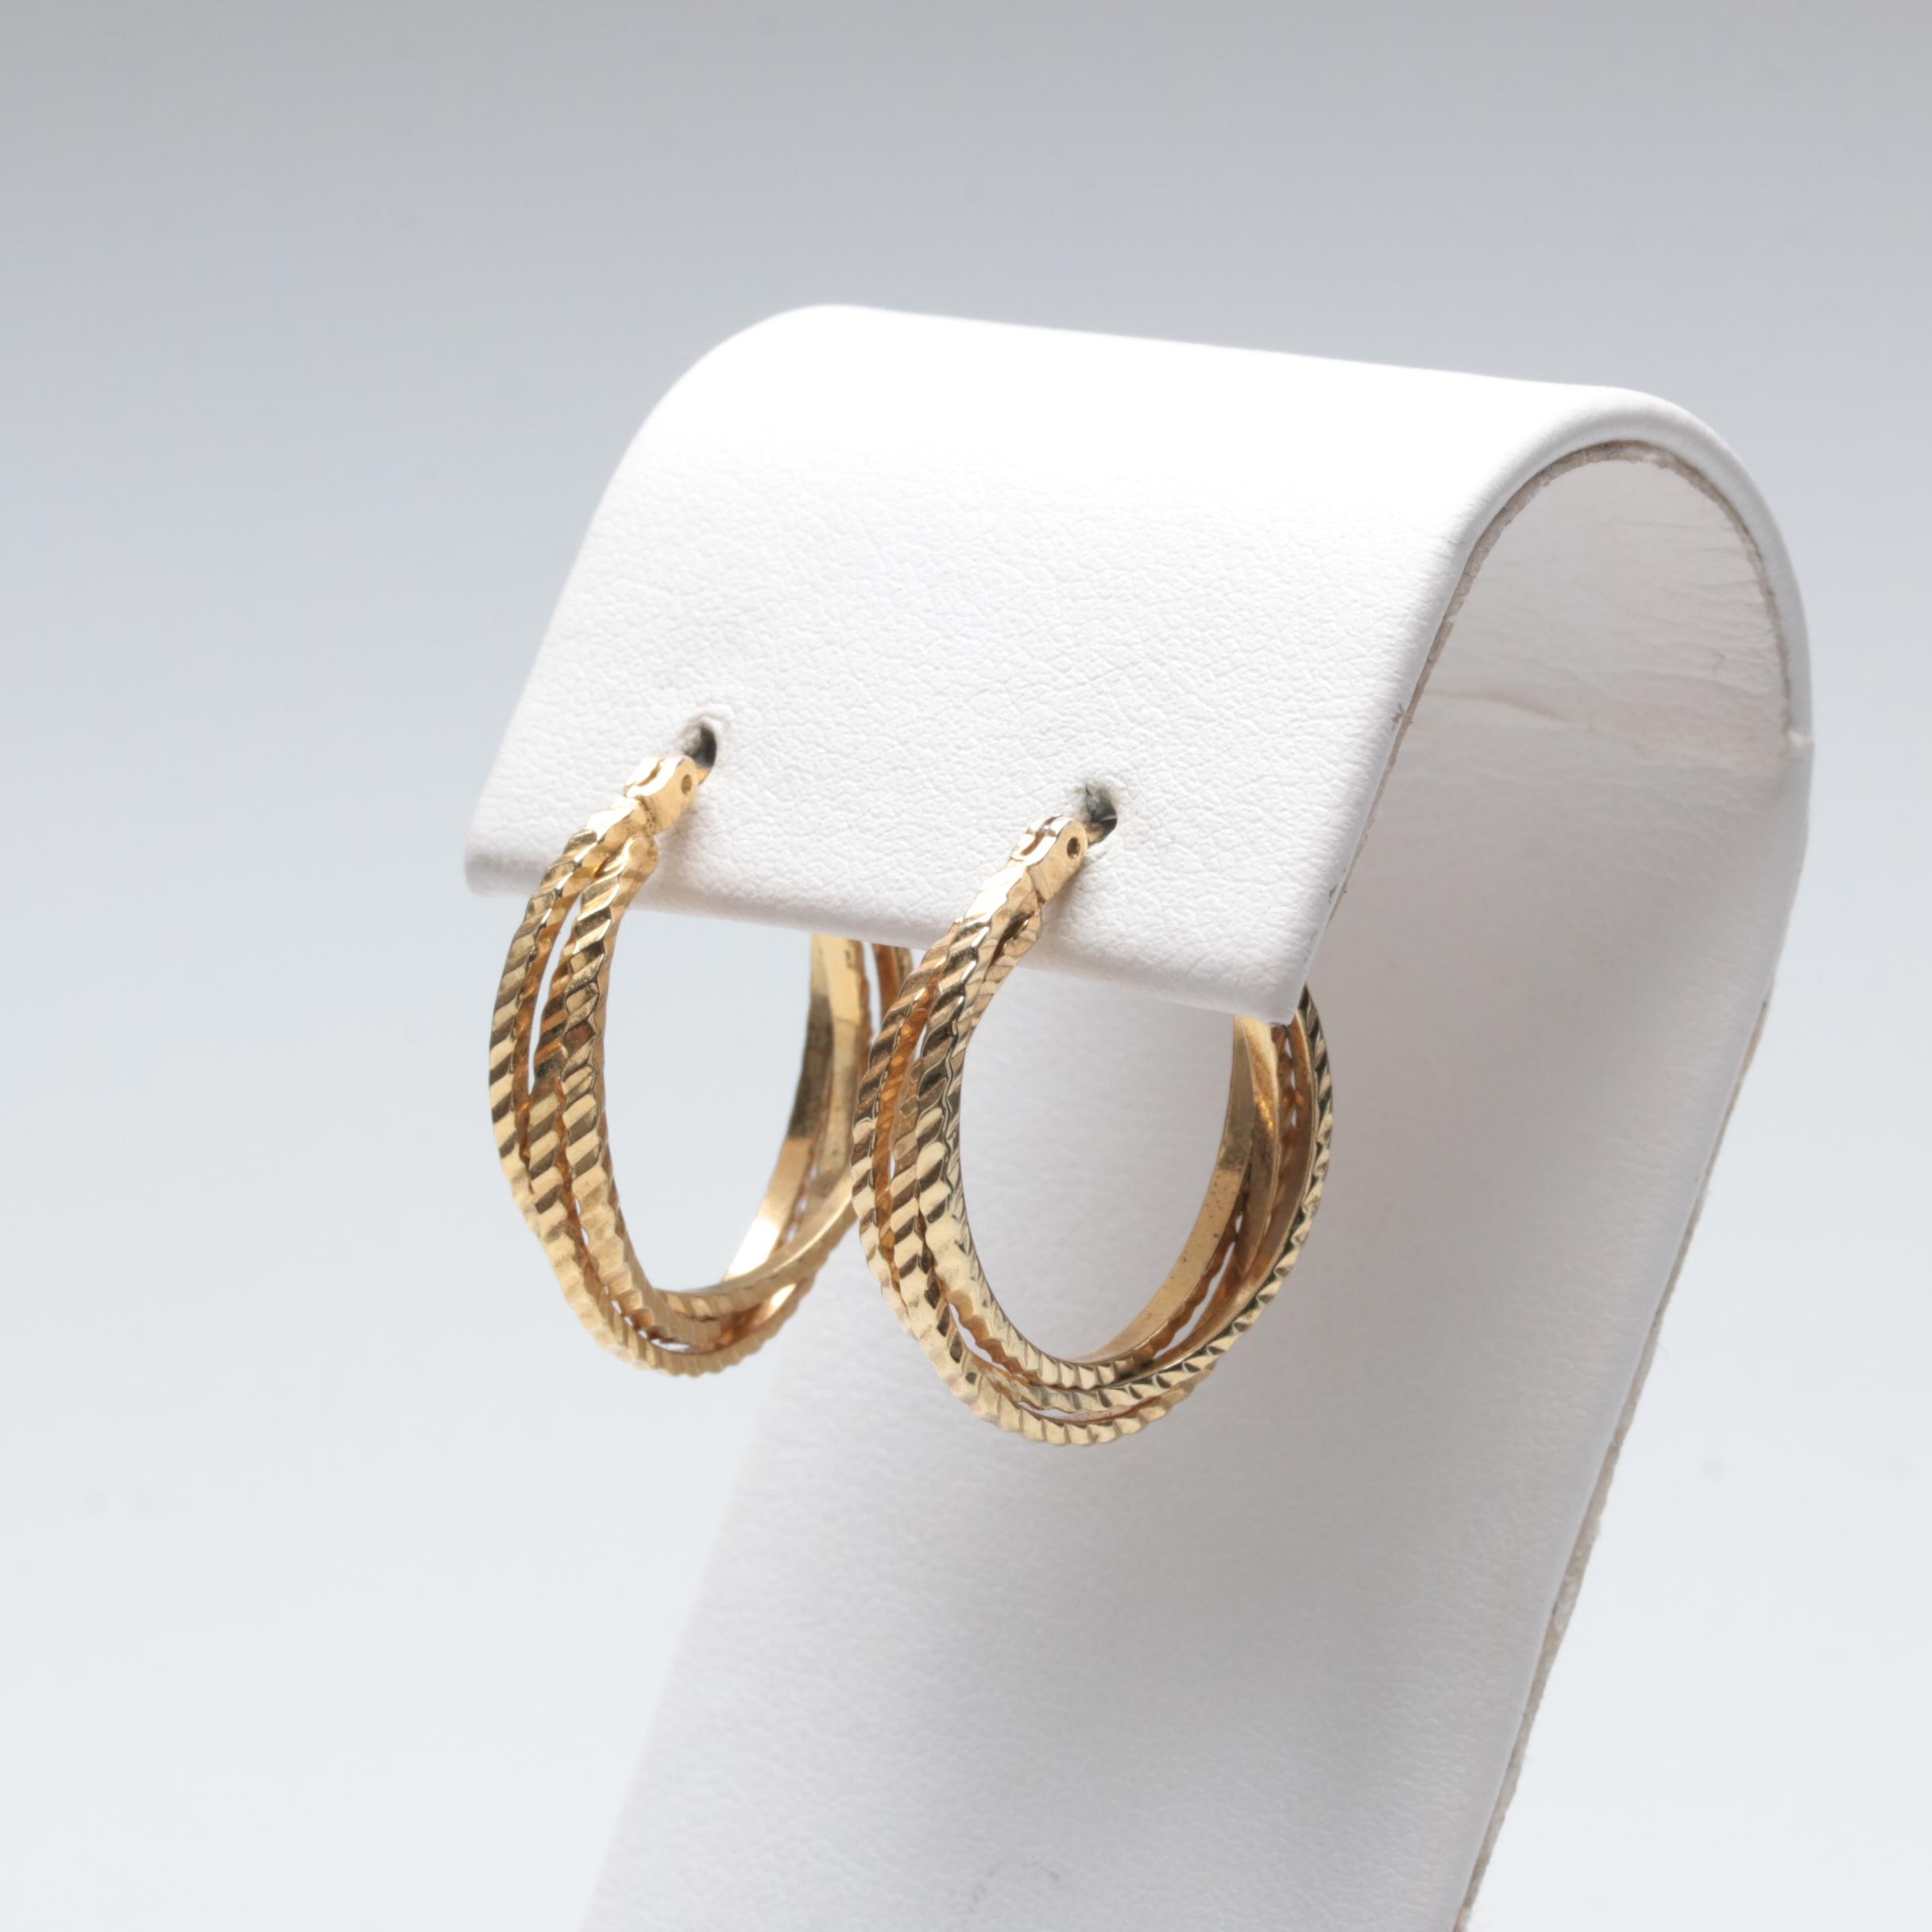 Pair of Costume Hoop Style Earrings